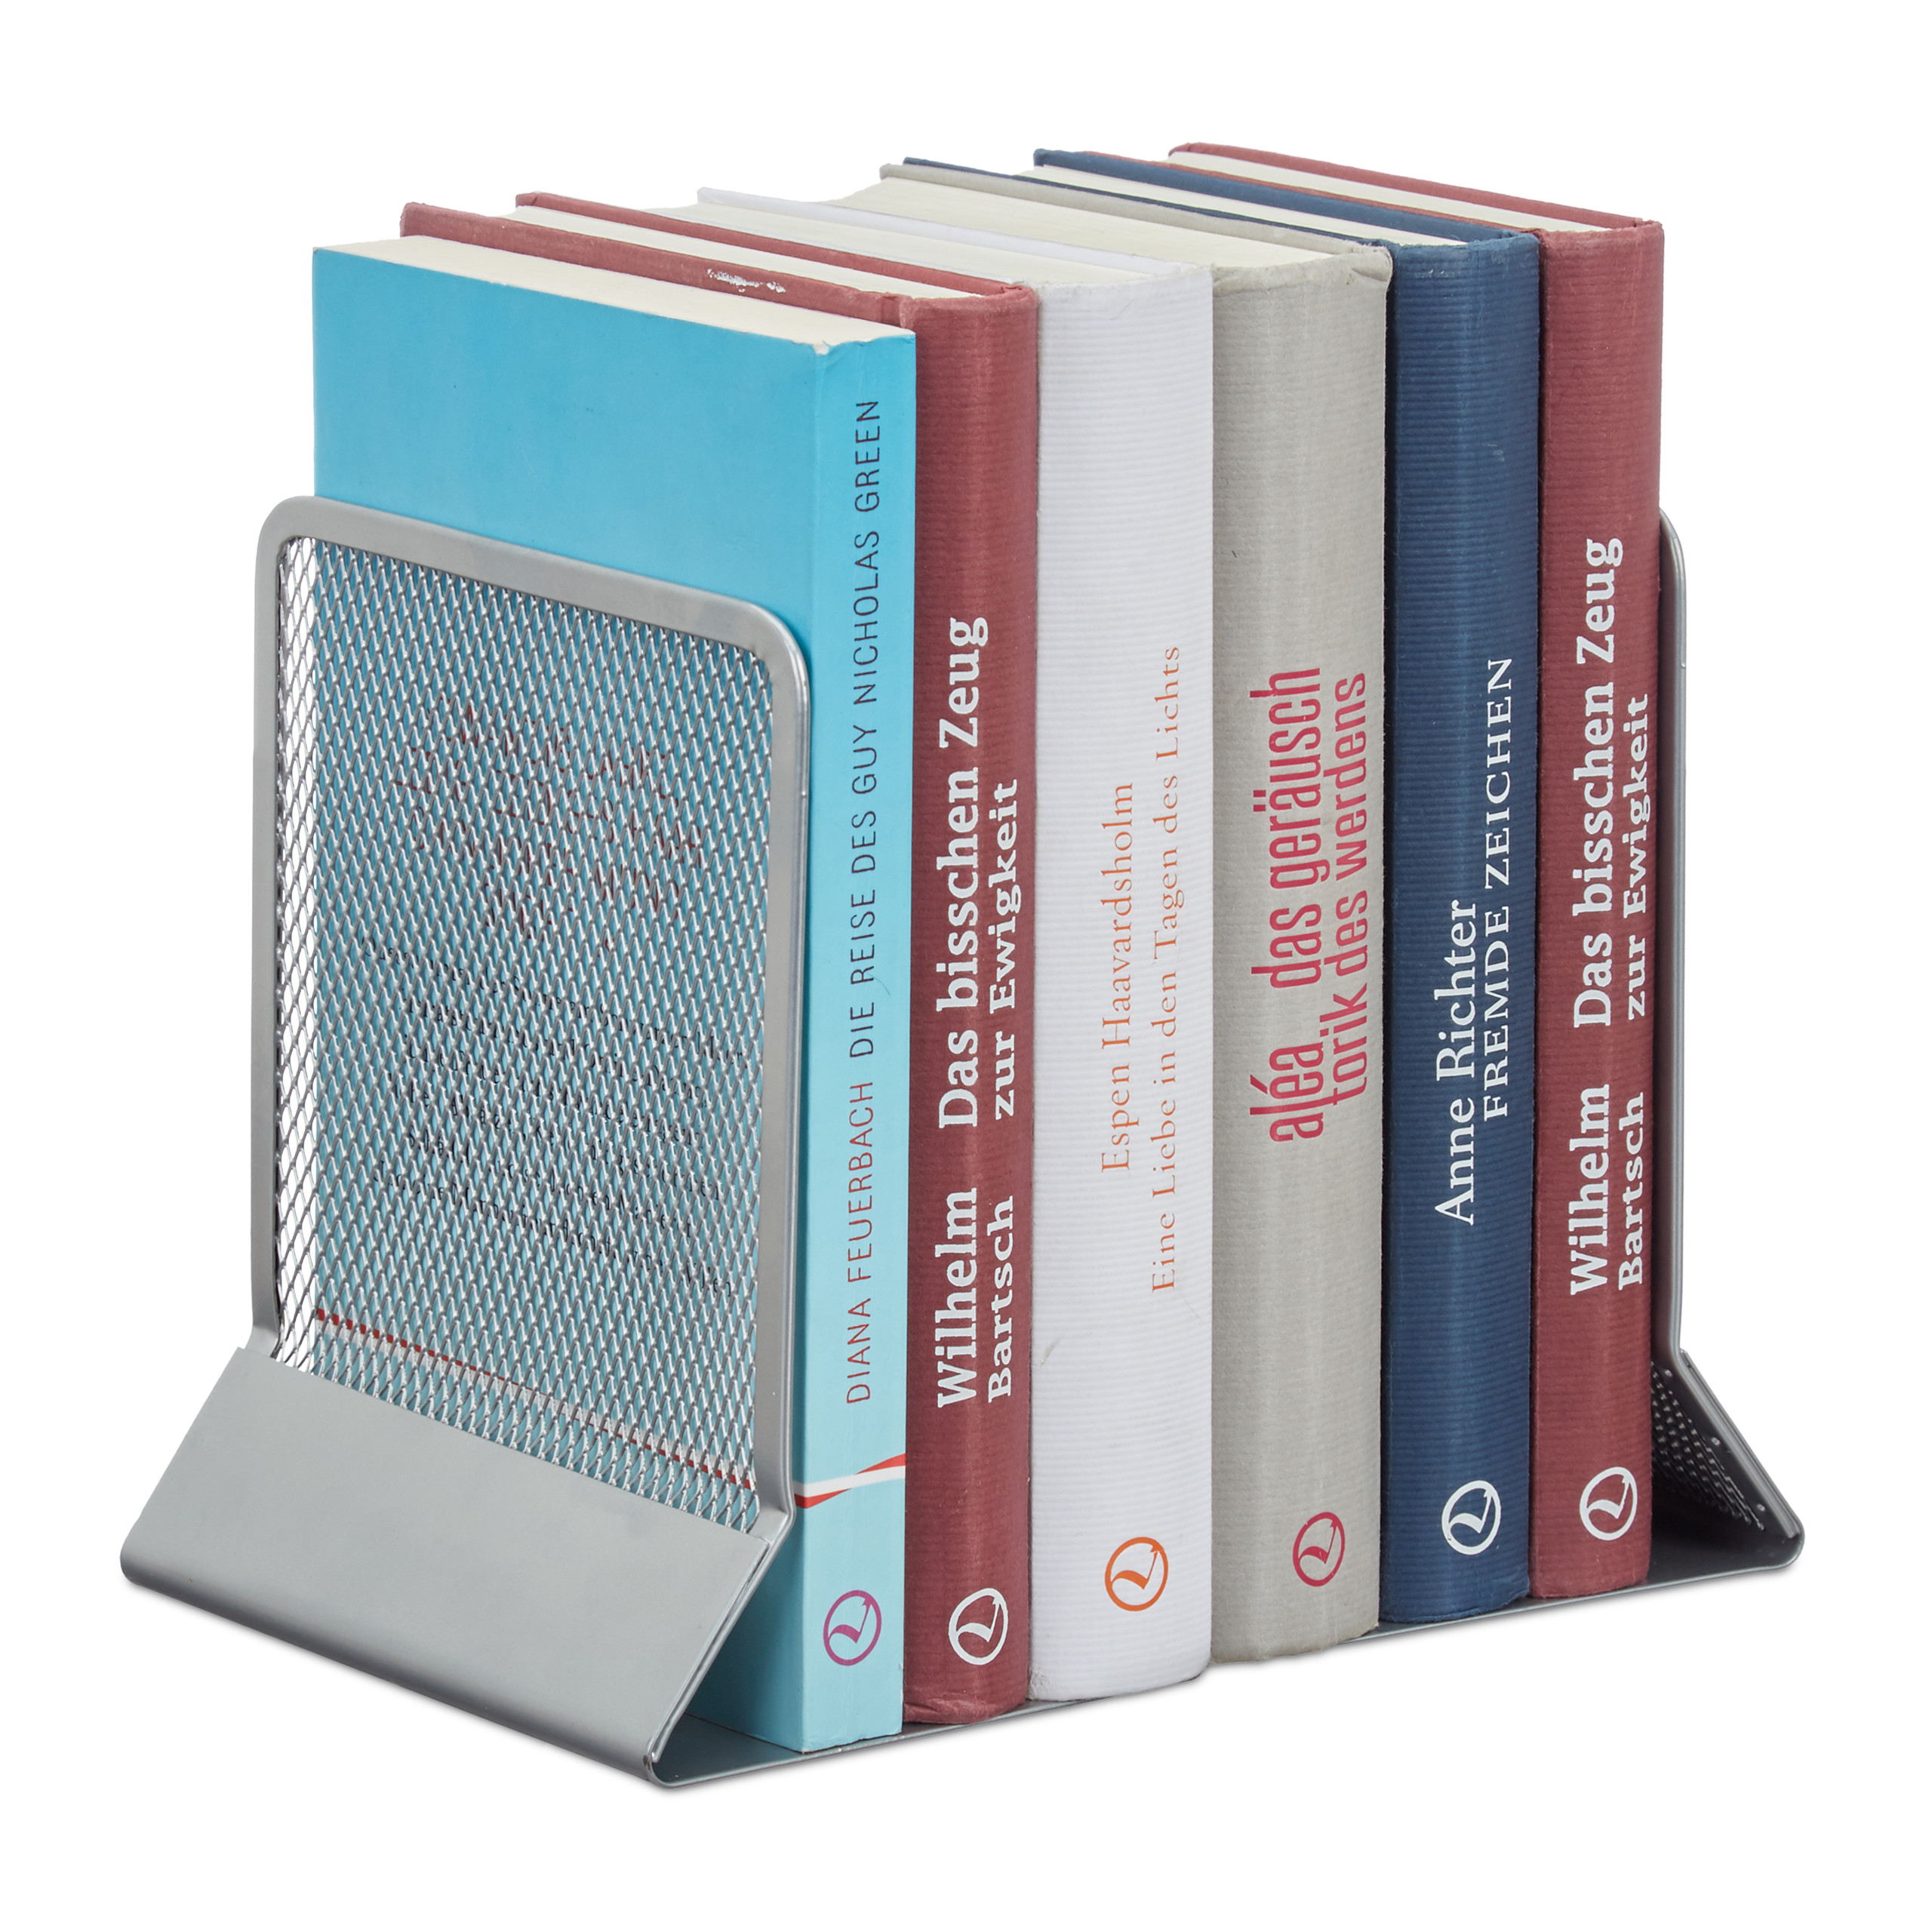 2-Piece-Bookend-Set-Decorative-Book-CD-and-DVD-Holders-Metal-Book-Support thumbnail 14